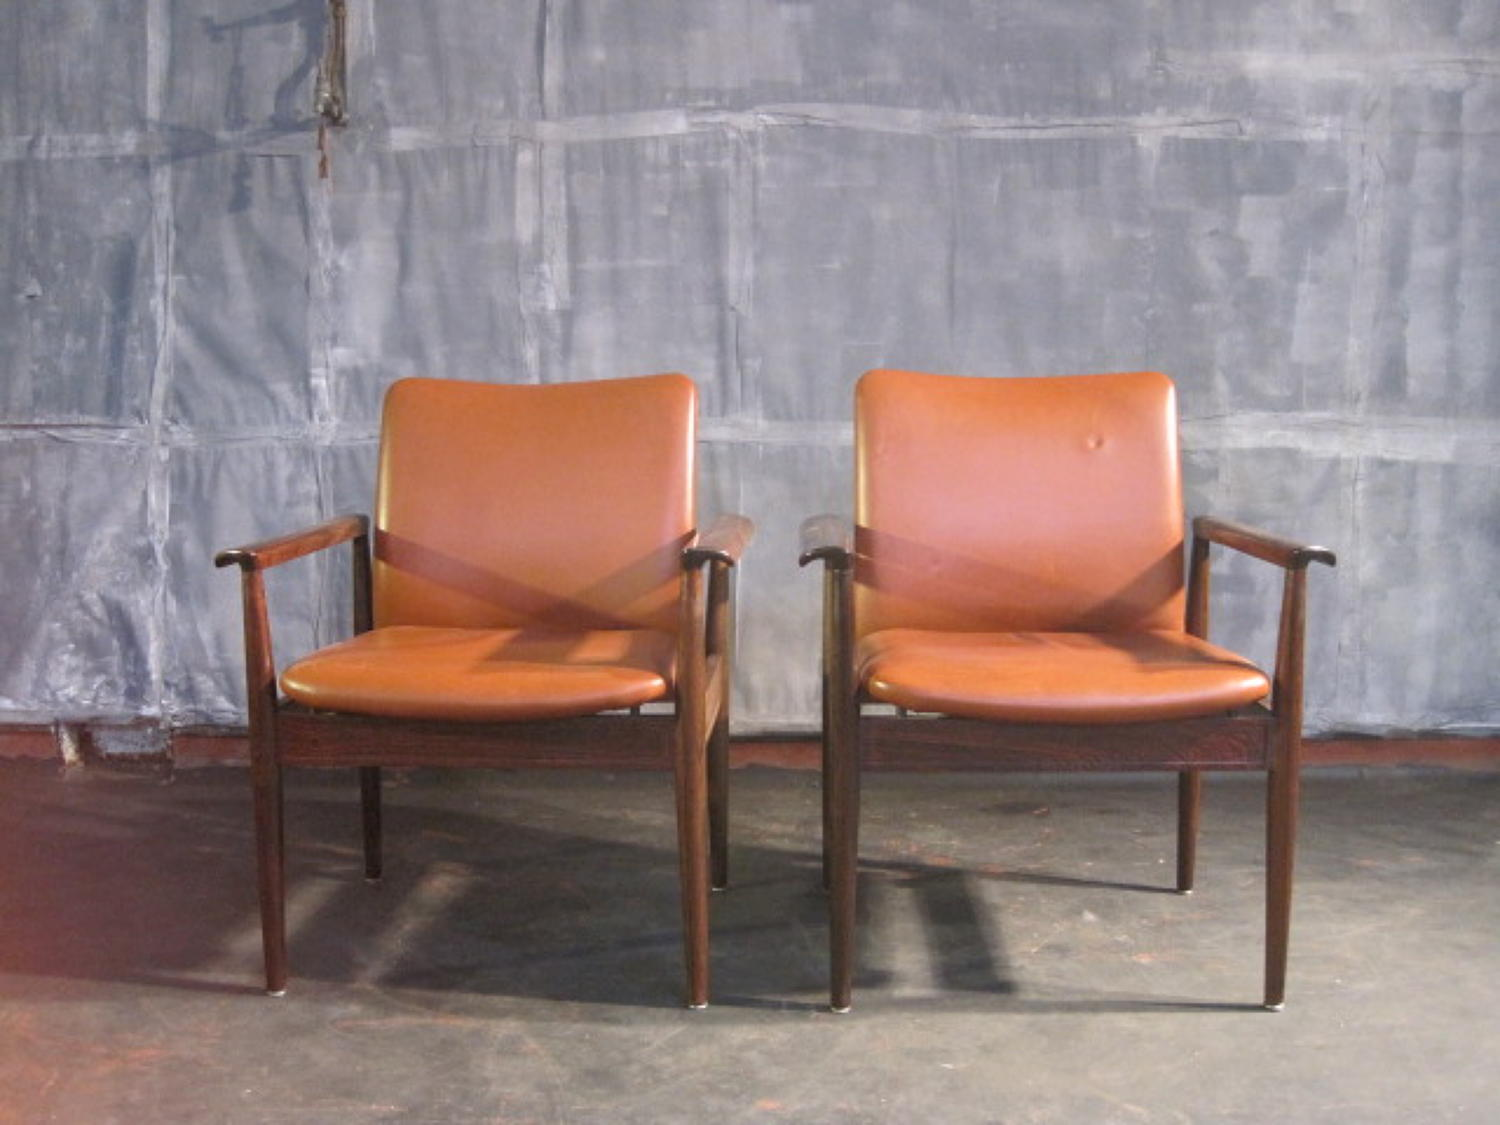 Rosewood and leather Diplomat chairs by Finn Juhl